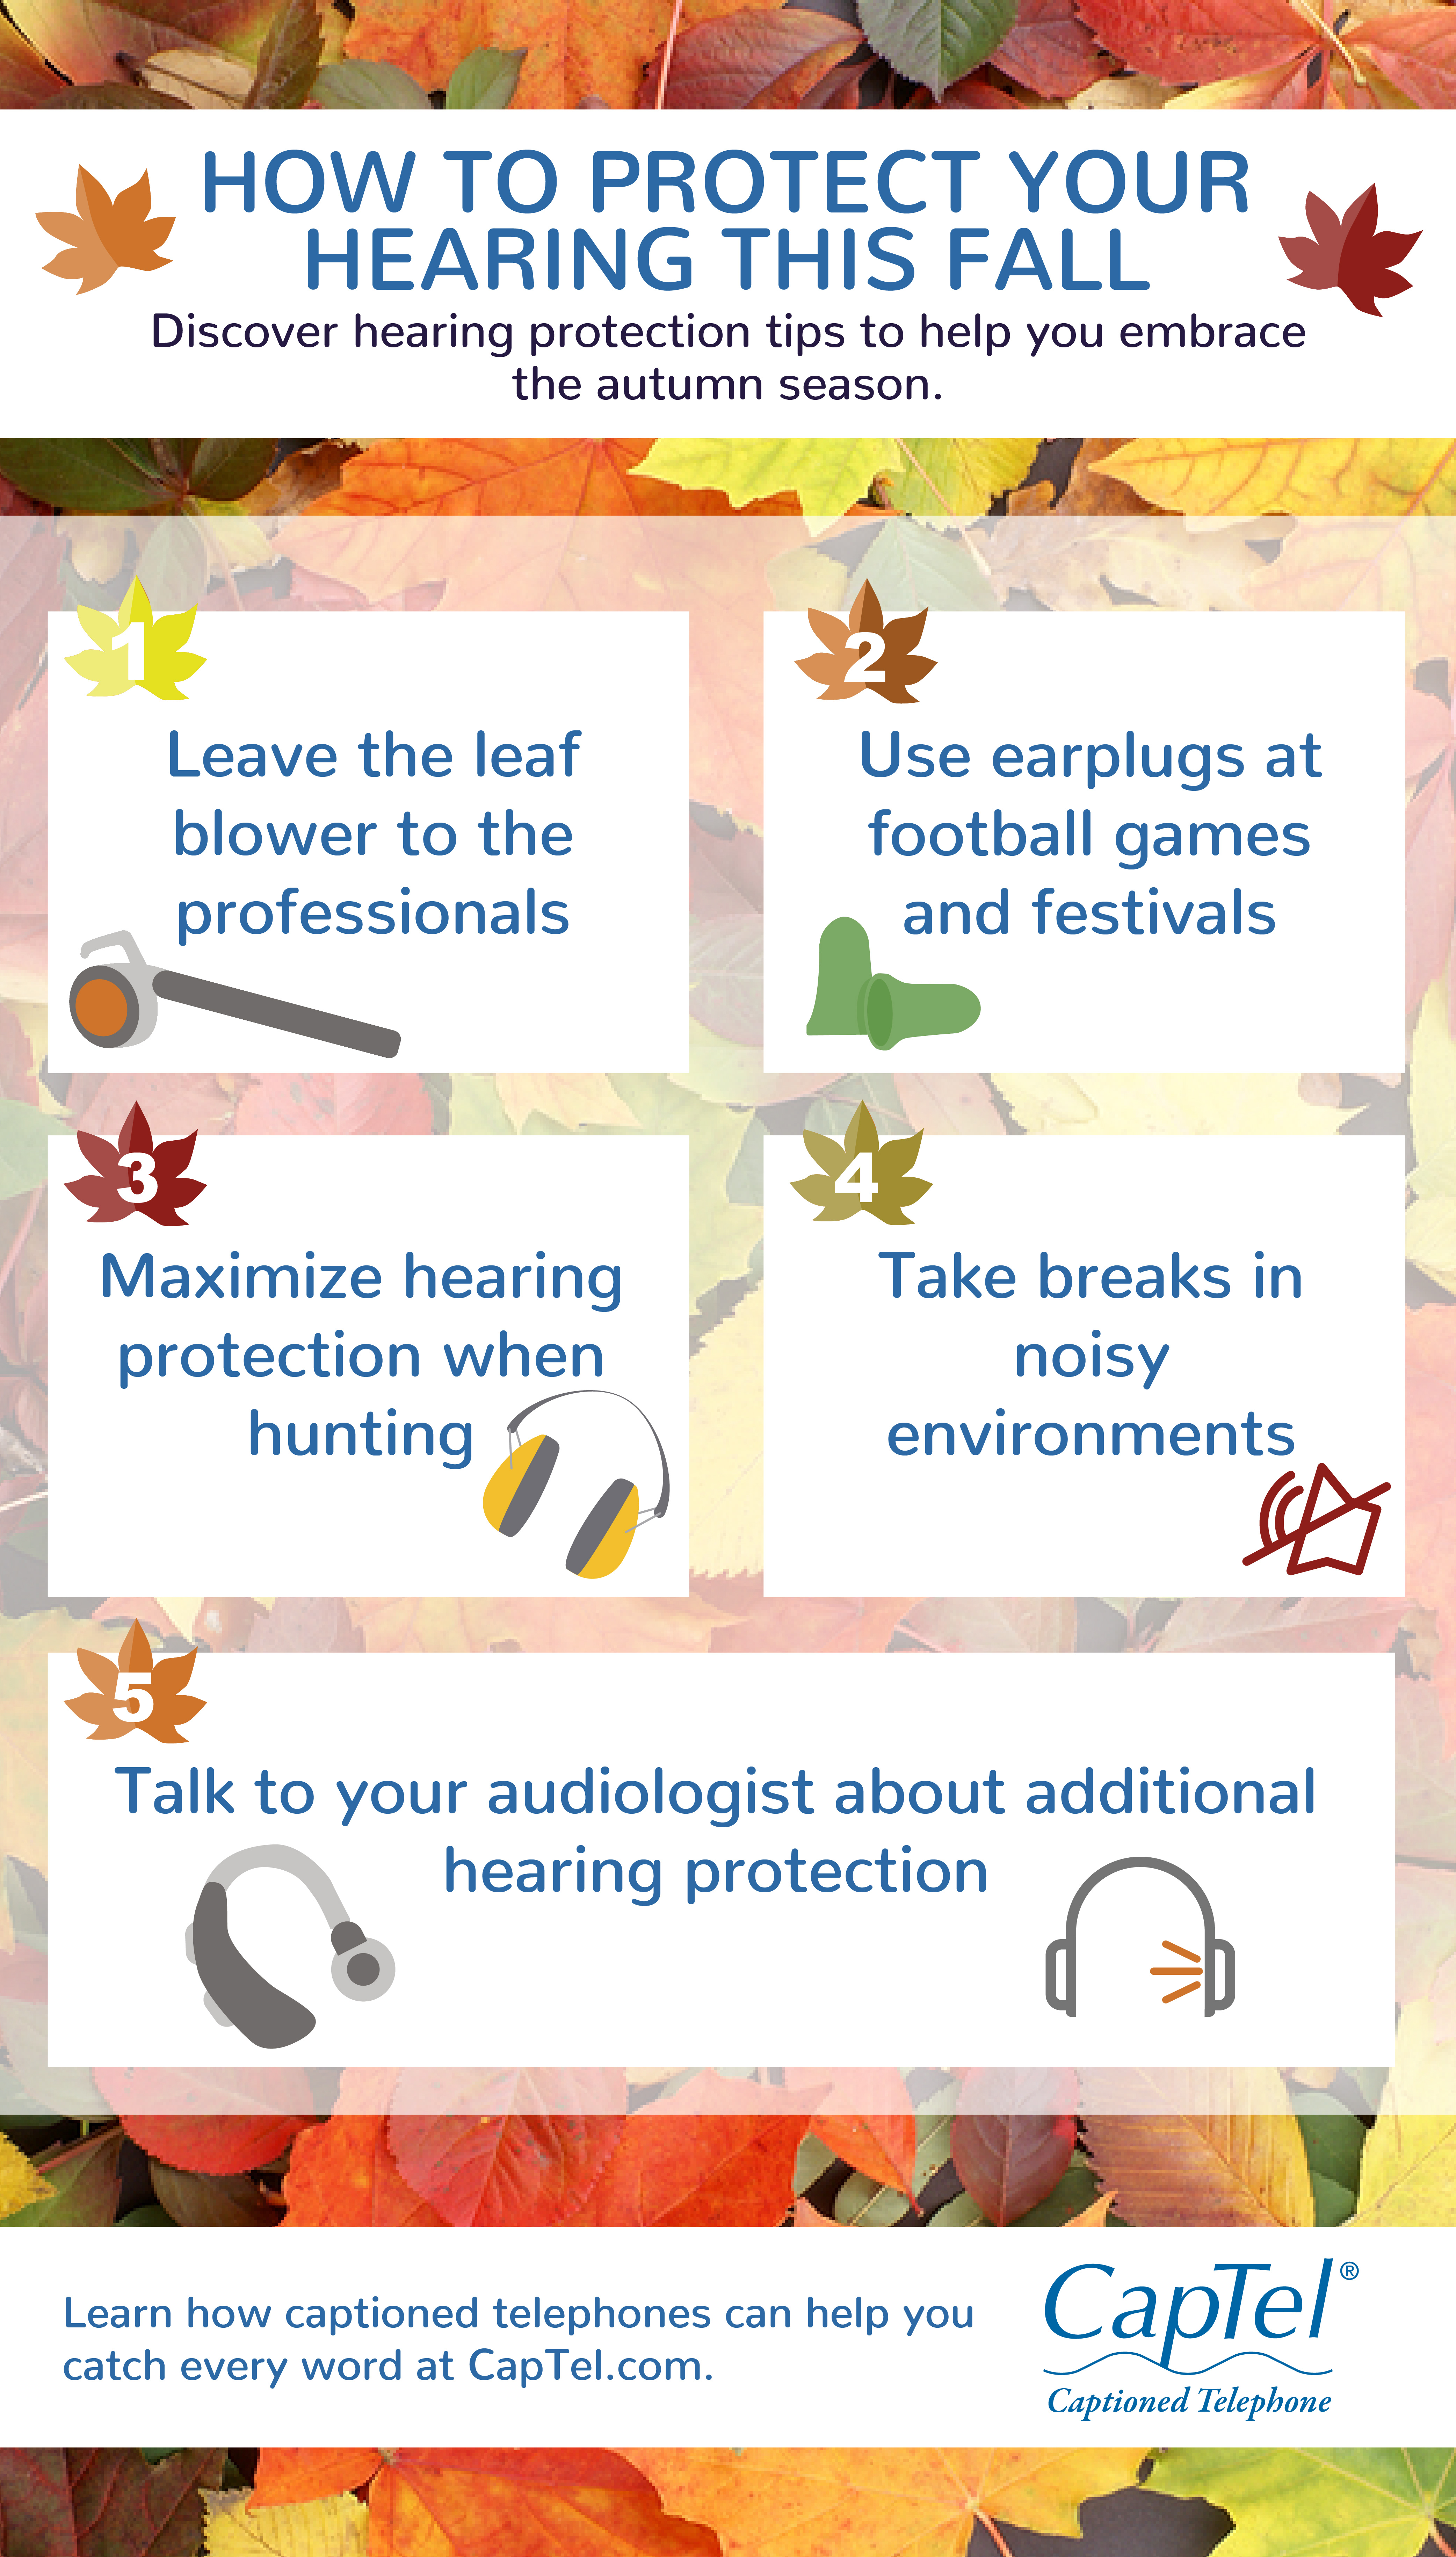 One tip on how to protect your hearing this fall is to leave the leaf blowing to the professionals.